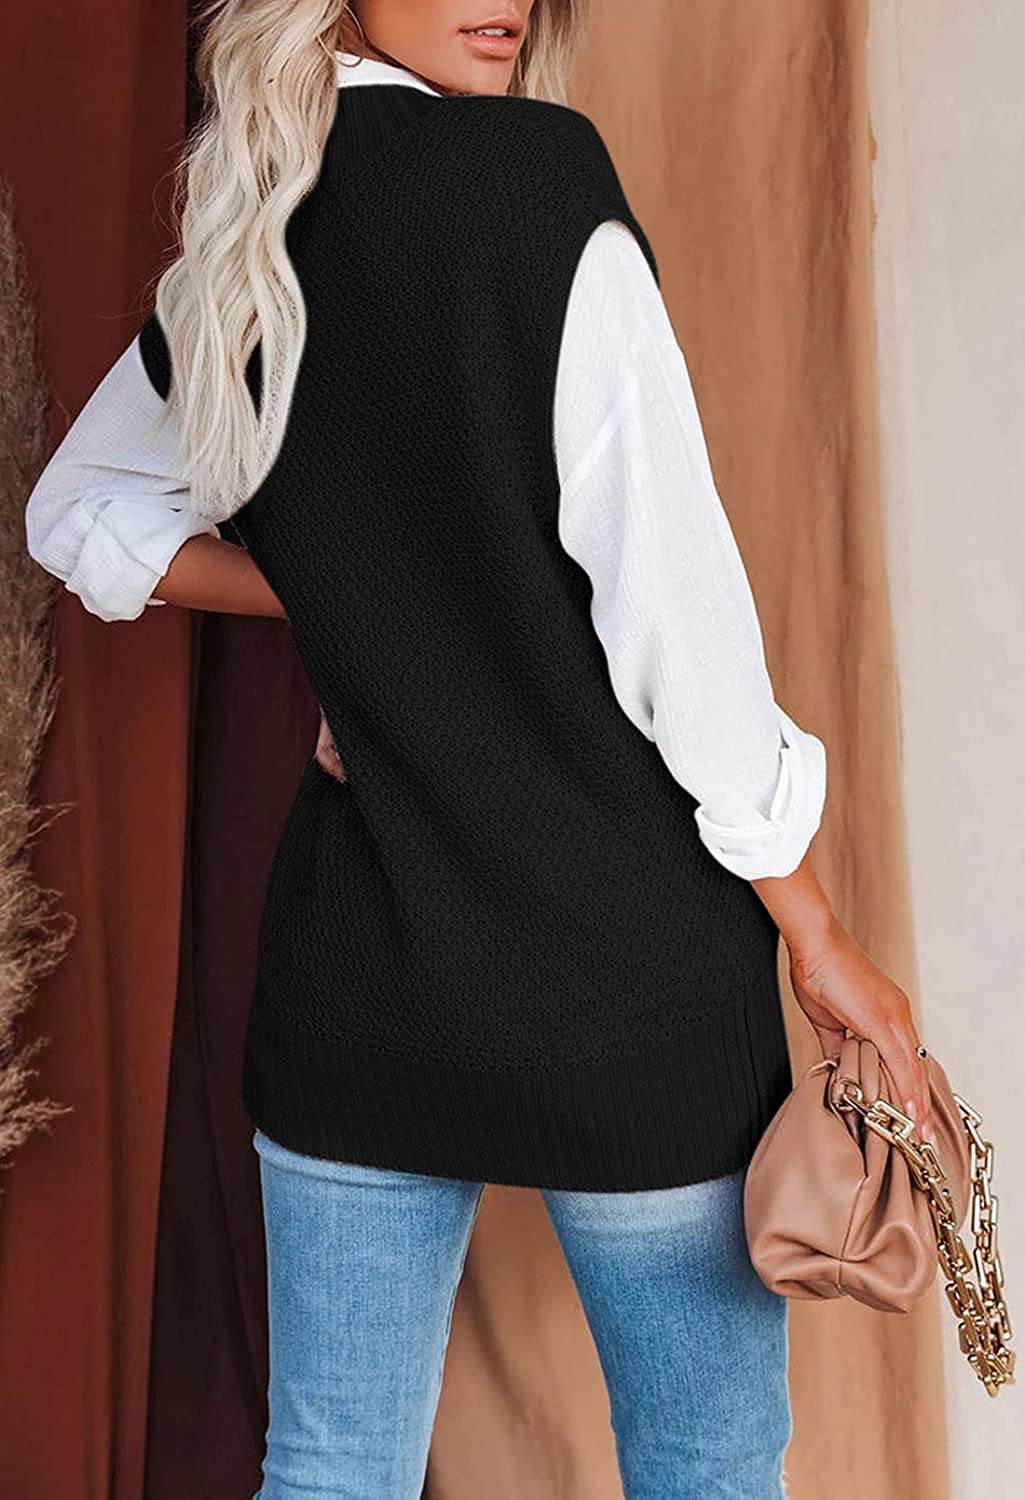 Meenew Women's V Neck Cable Knit Sweater Vest Sleeveless Loose Pullover Top